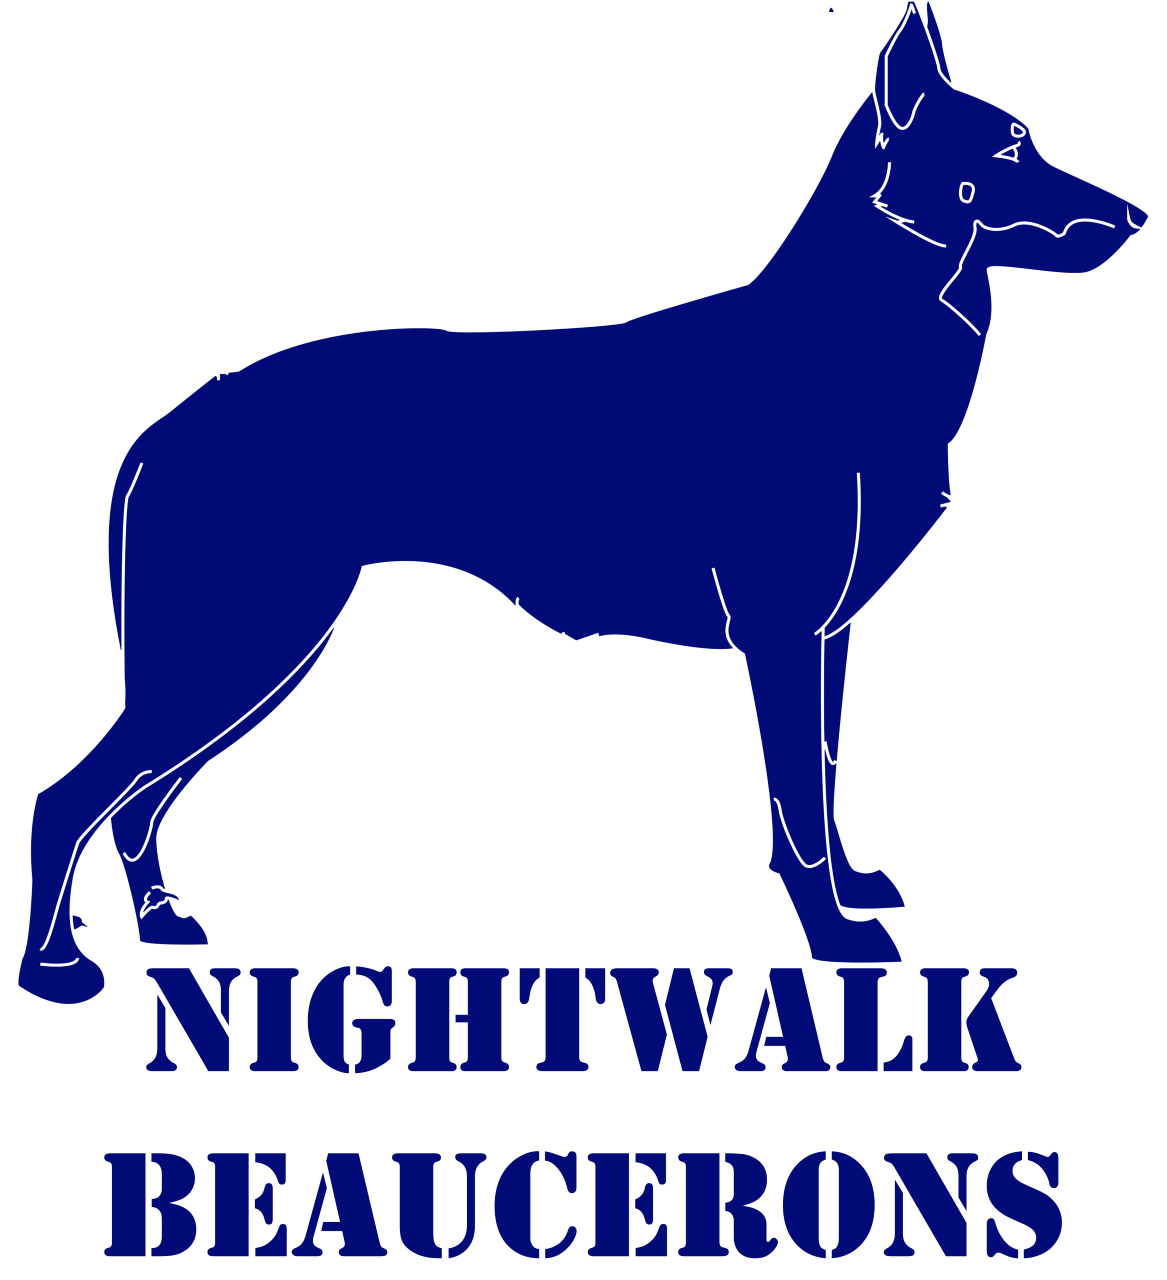 Nightwalk Beaucerons